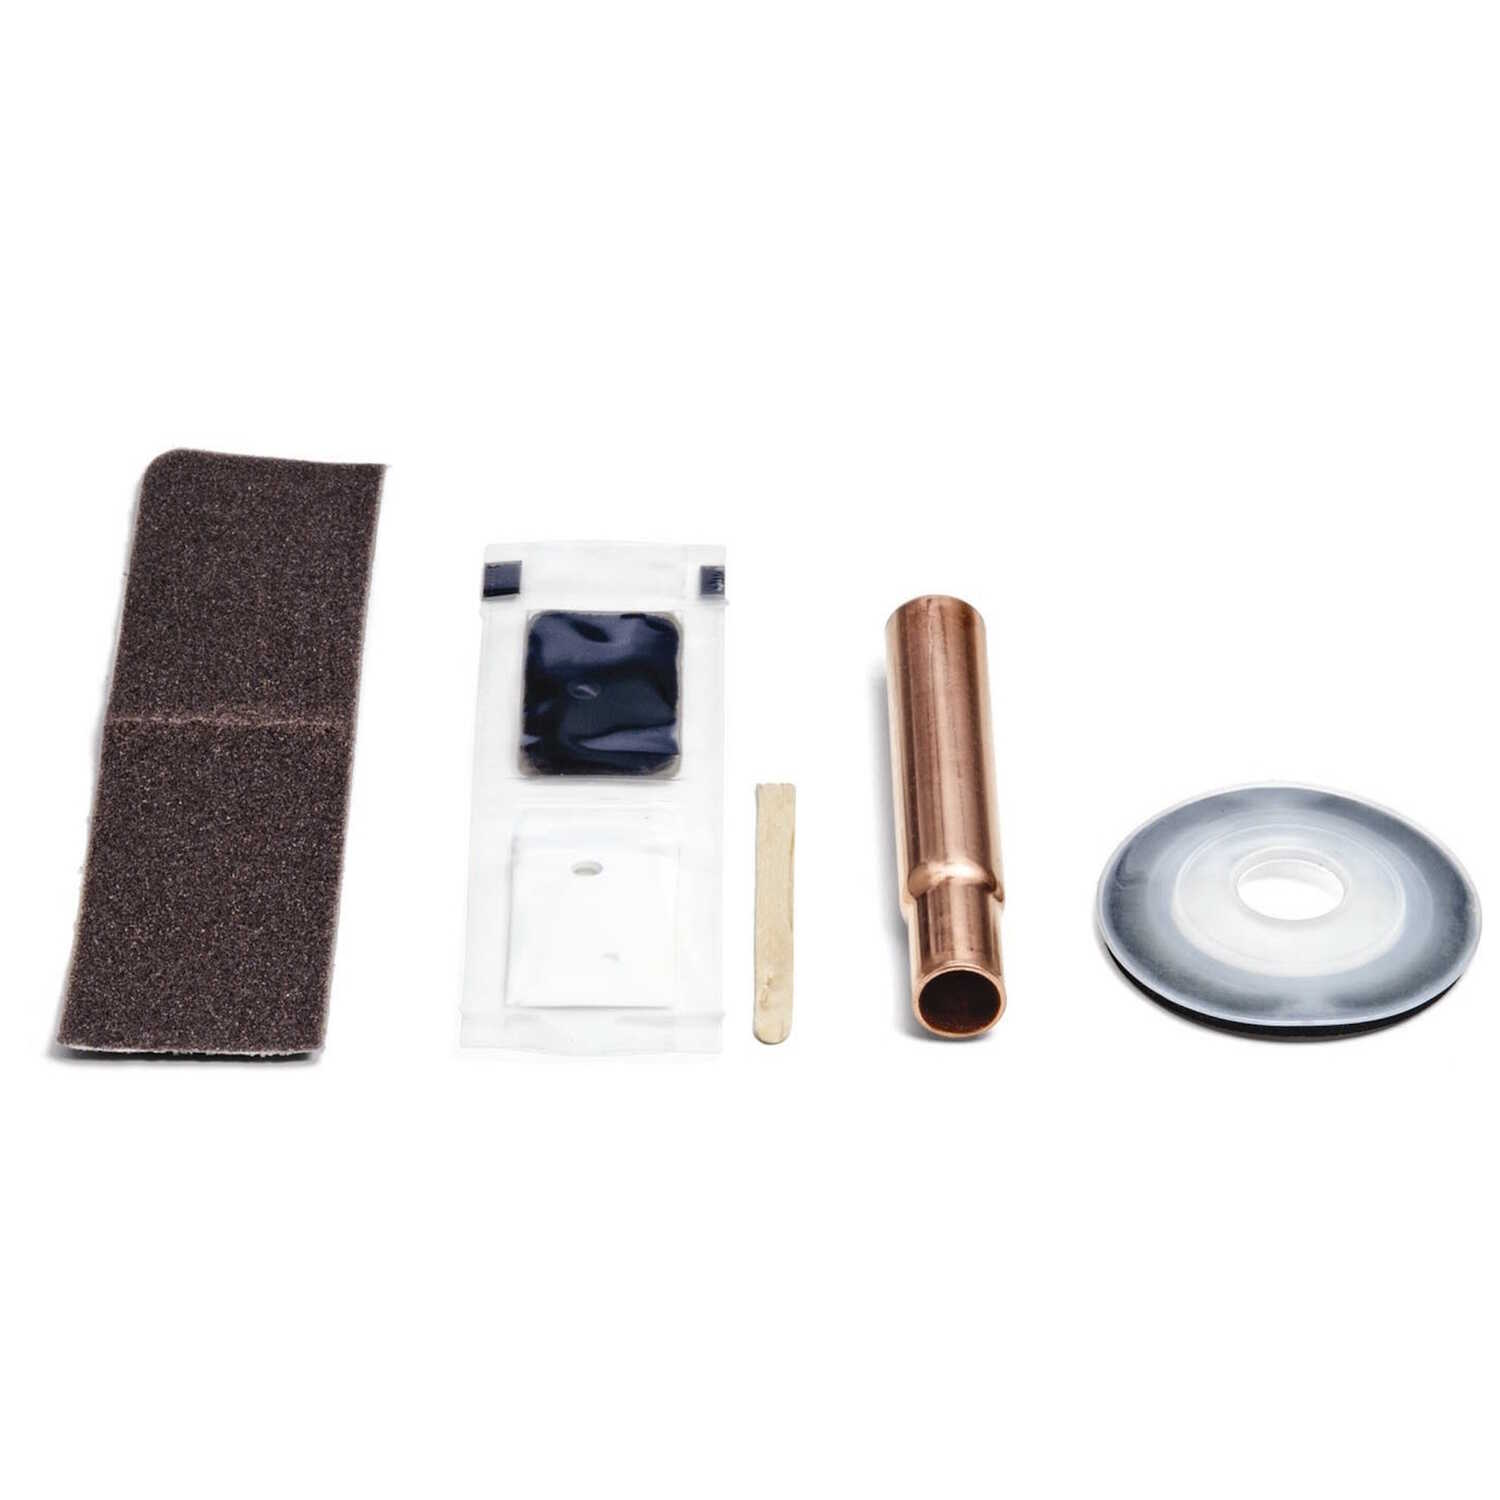 Sioux Chief  5/8 in. Spigot   x 5/8 inside in. Dia. Copper  Extension Nipple Adapter Kit